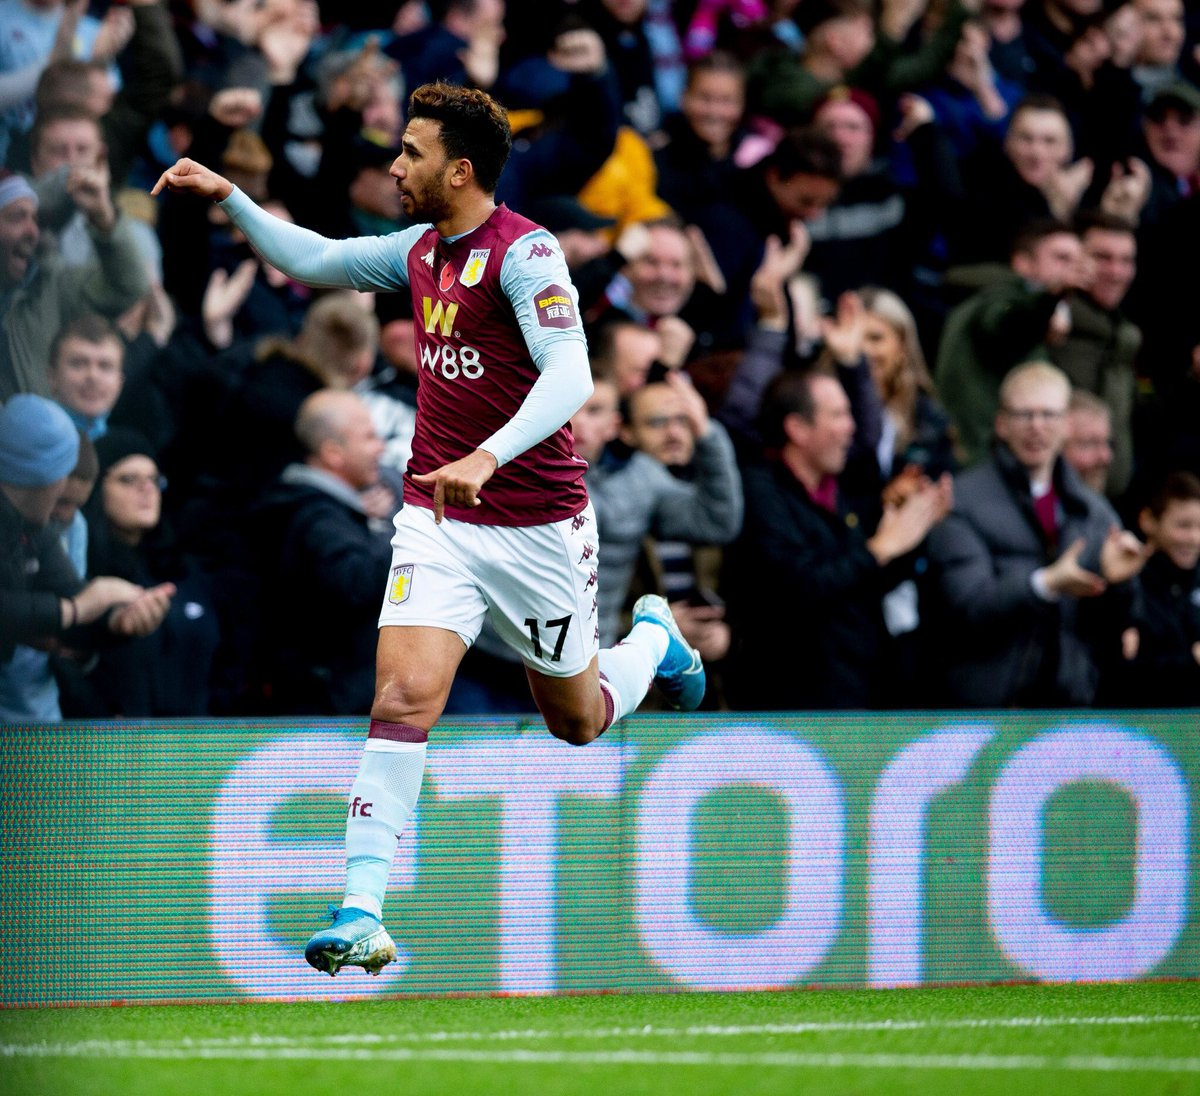 #avfc fans, your man of the match vs Liverpool?